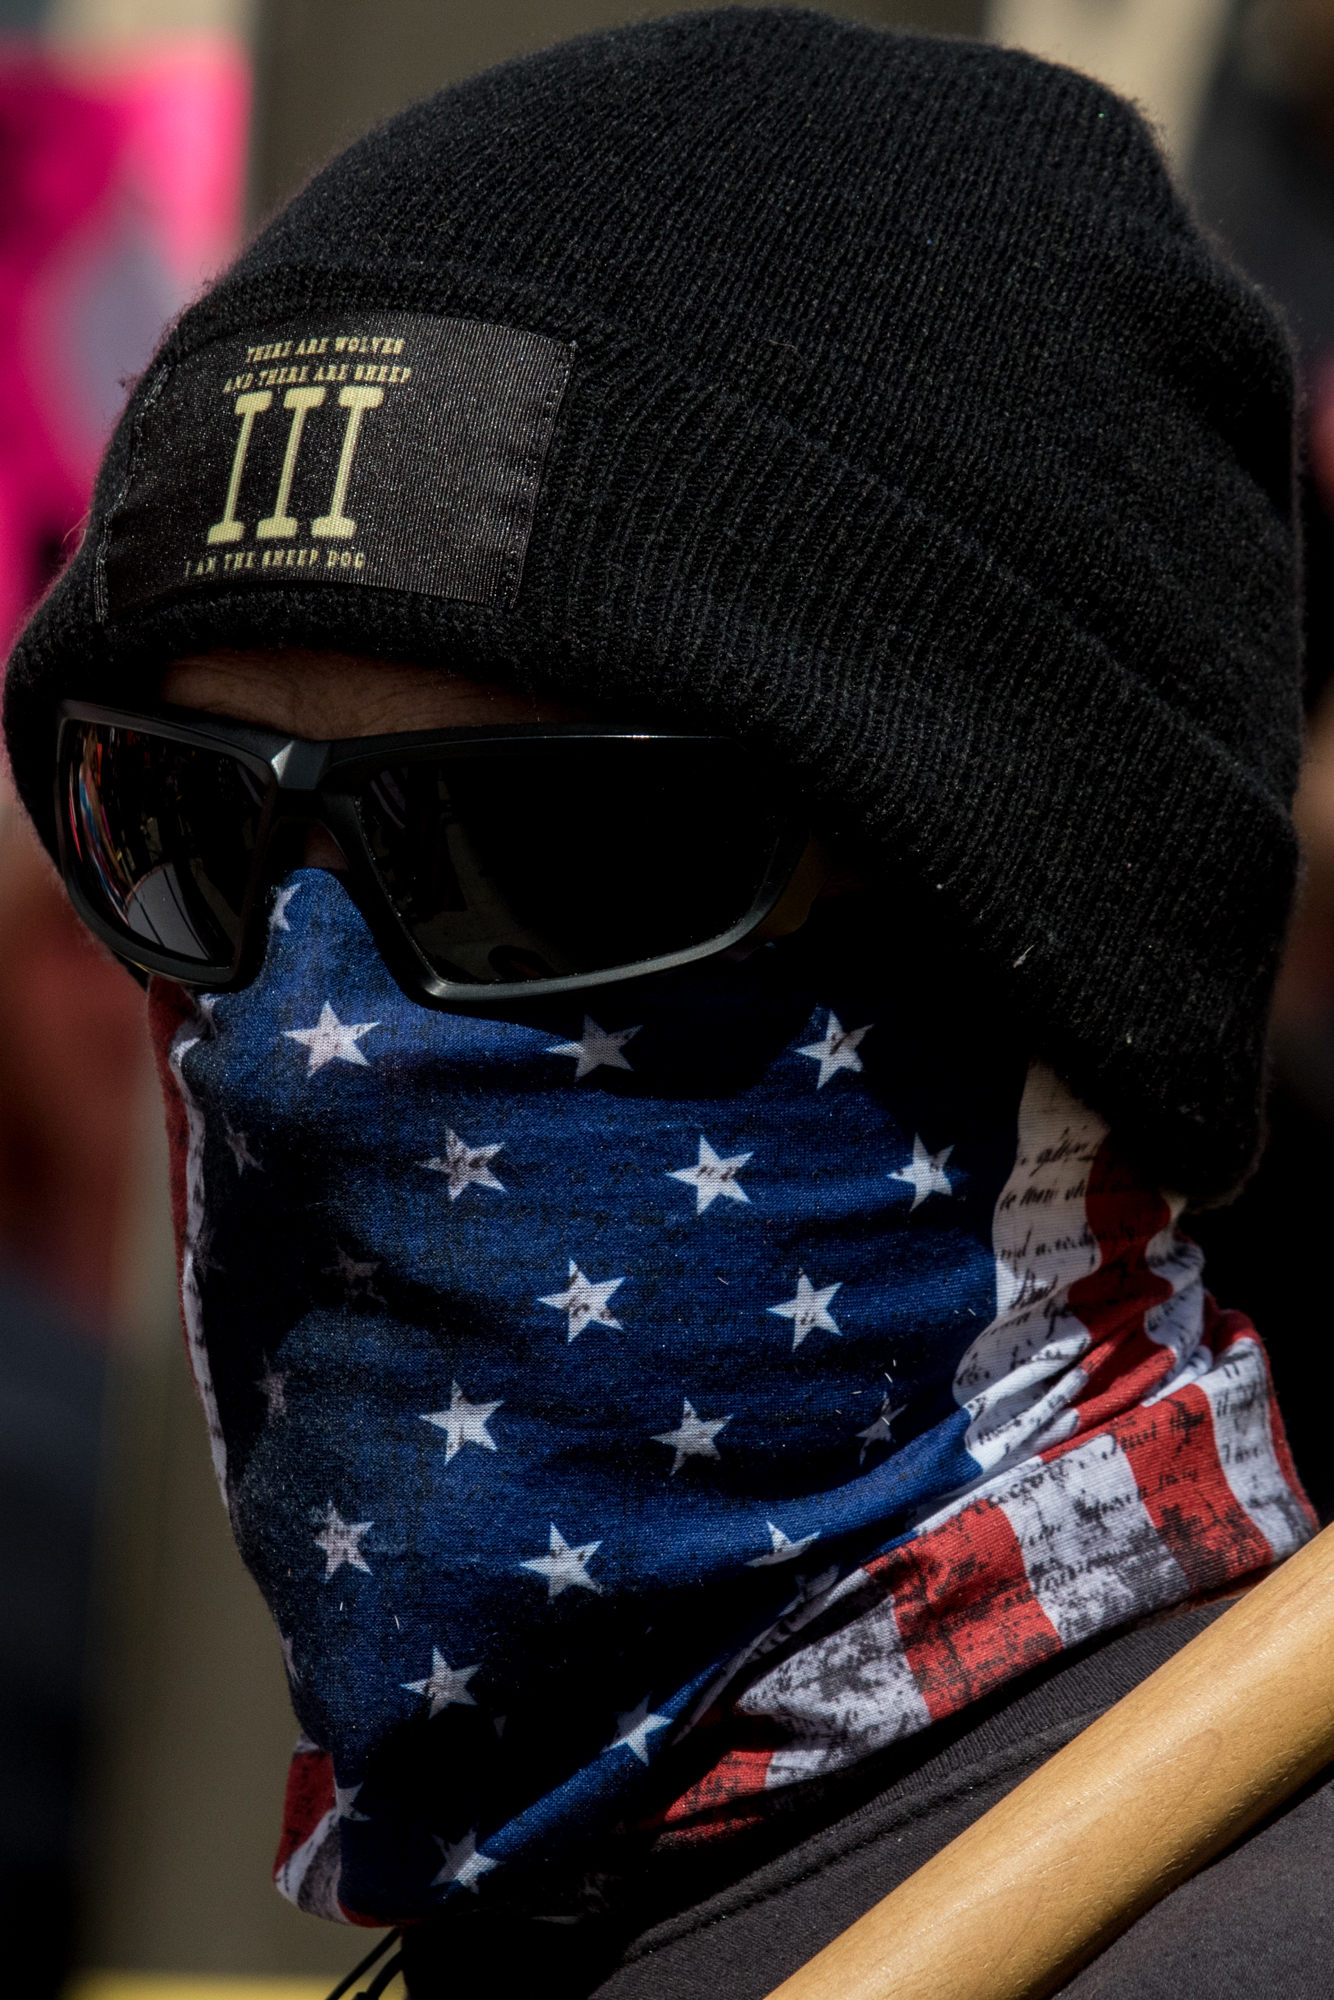 A masked Donald Trump supporter at the March For Our Lives protest on March 24, 2018 in Los Angeles, California. (Zane Meyer-Thornton/Corsair Photo)